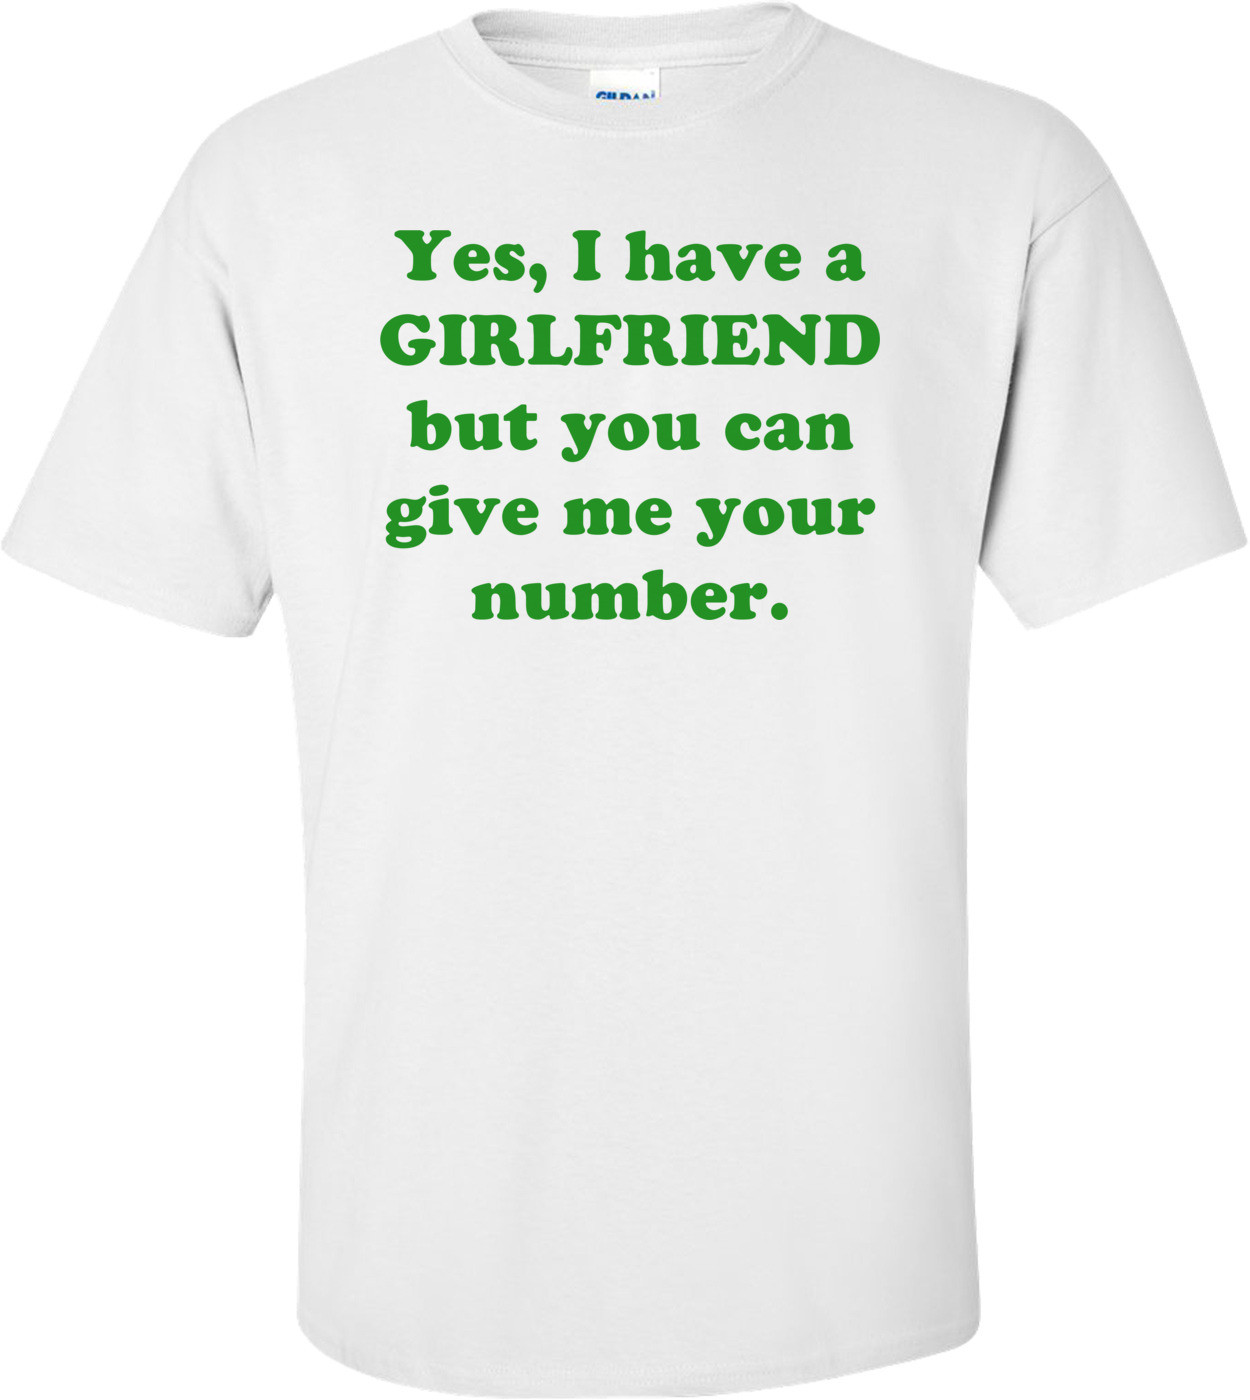 Yes, I have a GIRLFRIEND but you can give me your number. Shirt